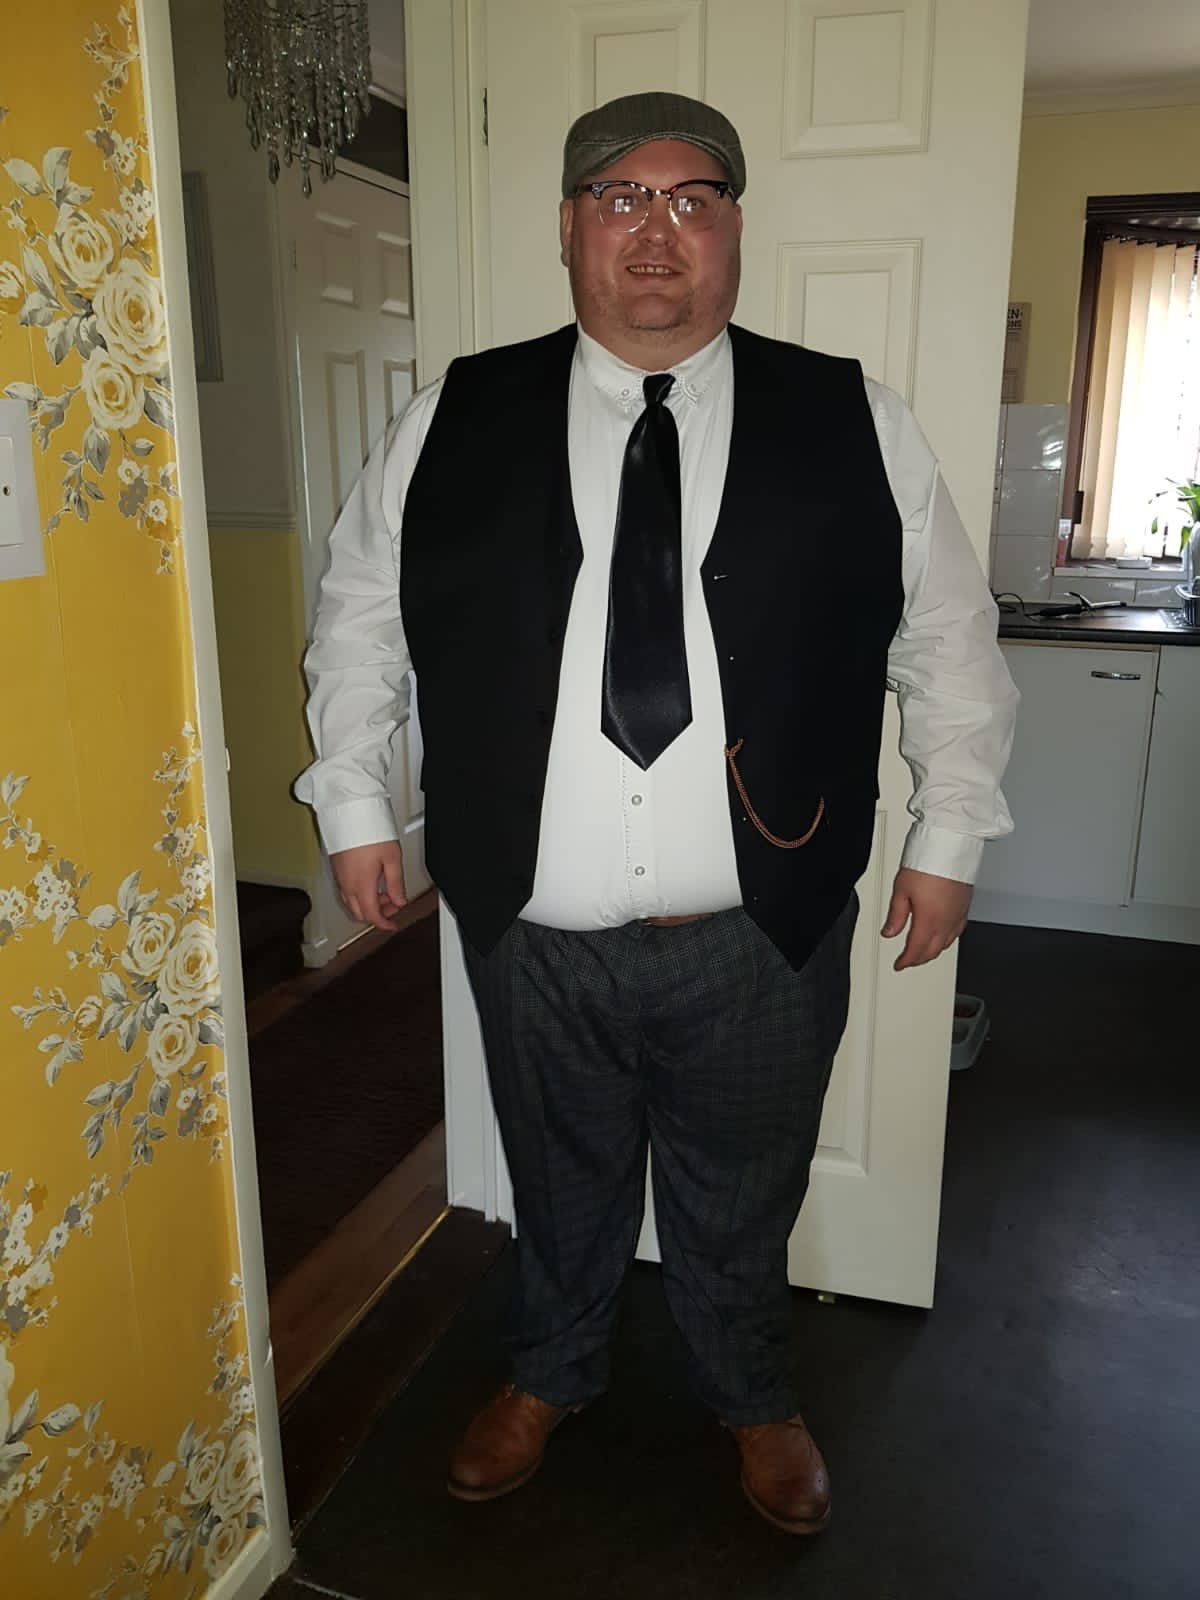 Maurice Willetts at his heaviest